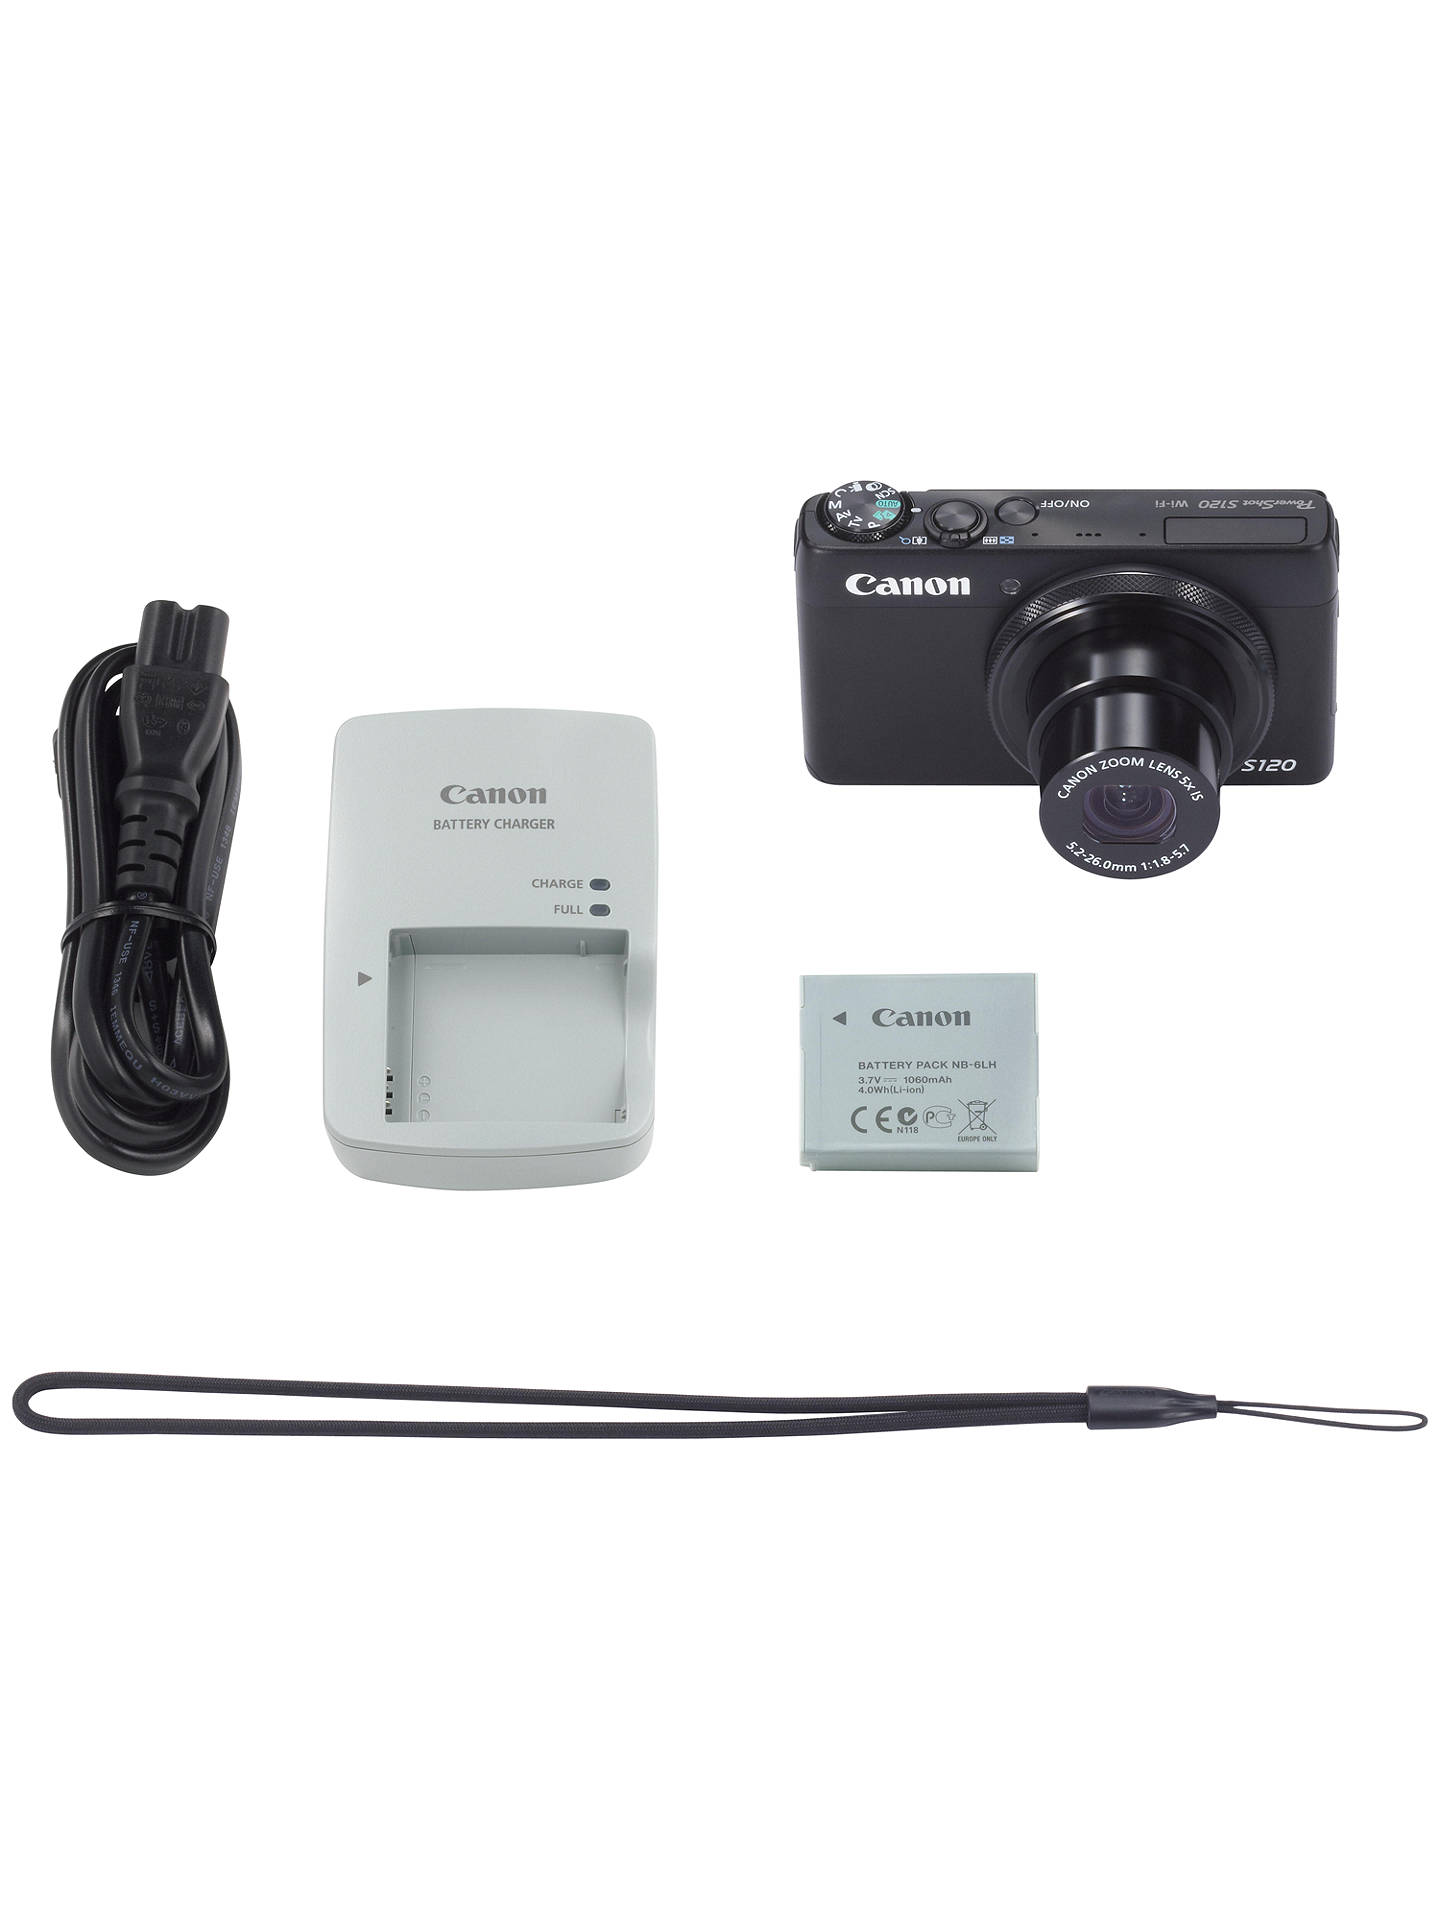 Canon Powershot S120 Digital Camera Hd 1080p 12 1mp 5x Optical Zoom Wi Fi Gps 3 Touch Screen At John Lewis Partners